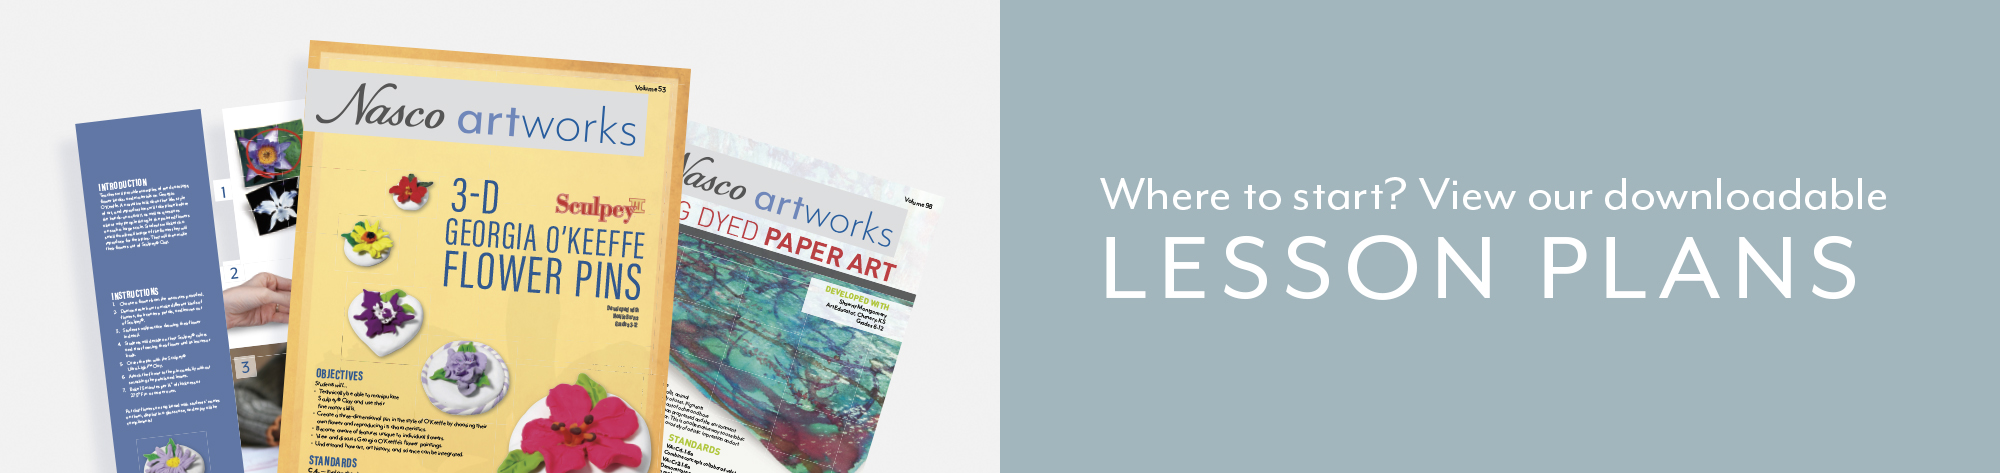 Where to start? View our downloadable lesson plans.